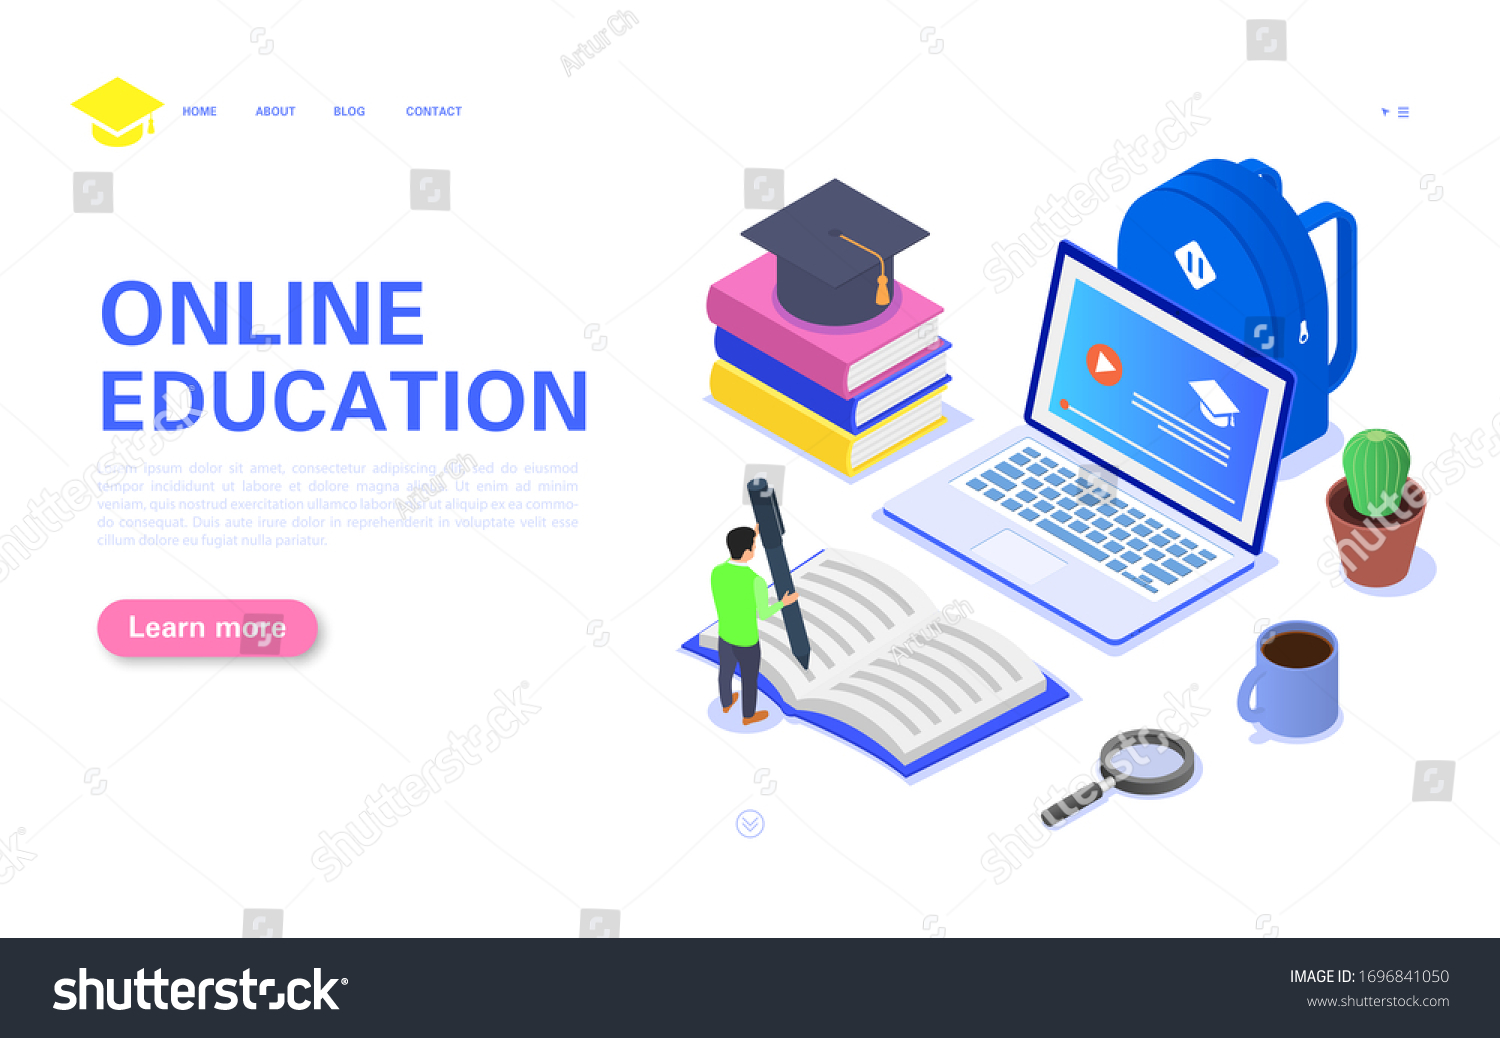 Modern Online Education Banner Concept Student Stock Vector Royalty Free 1696841050